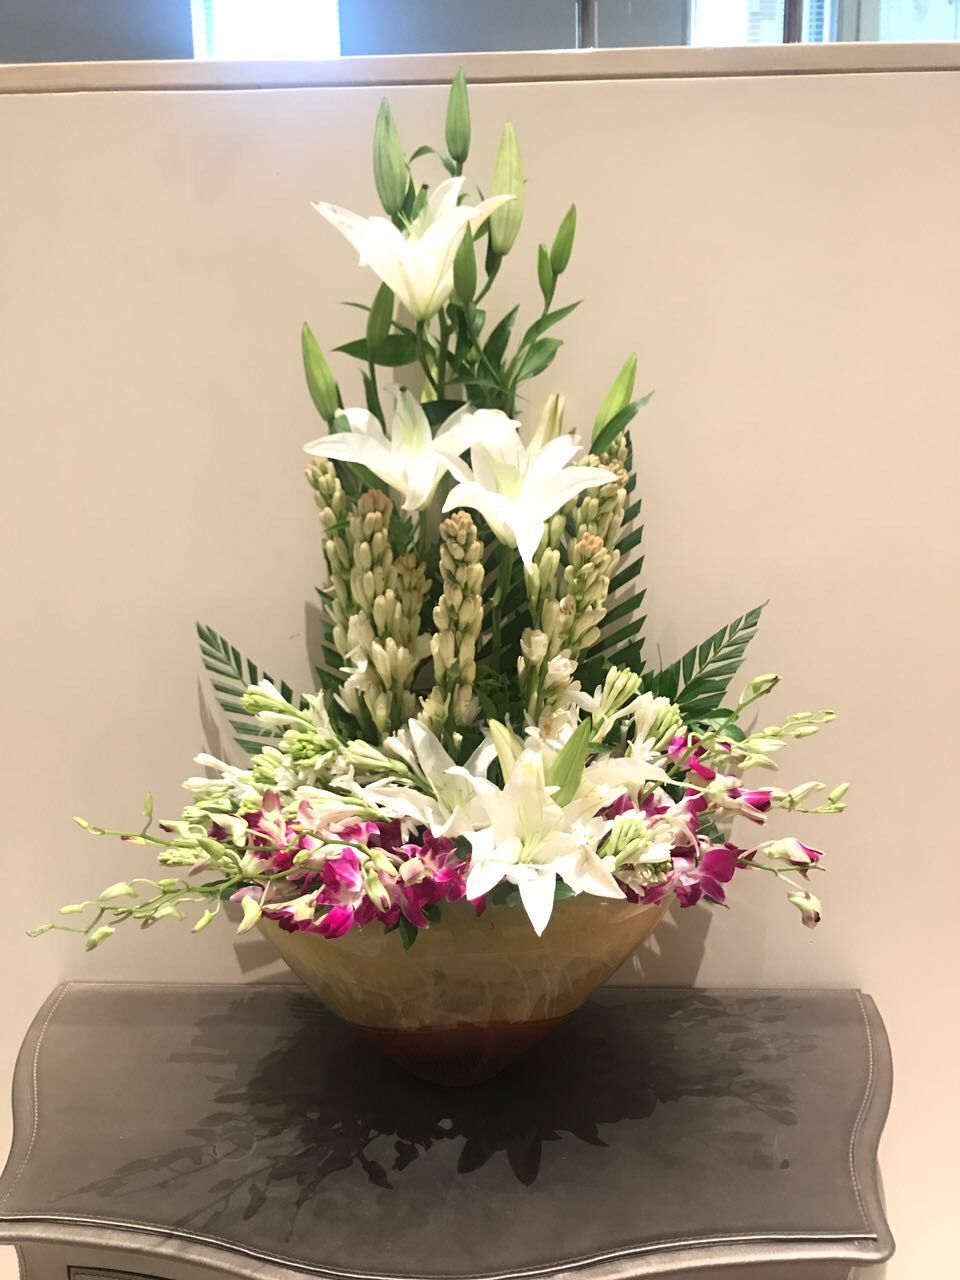 Order flowers online and make a loved one happy we offer a wide order flowers online and make a loved one happy we offer a wide selection of bouquets flower arrangements and plants to send for special occasions izmirmasajfo Images